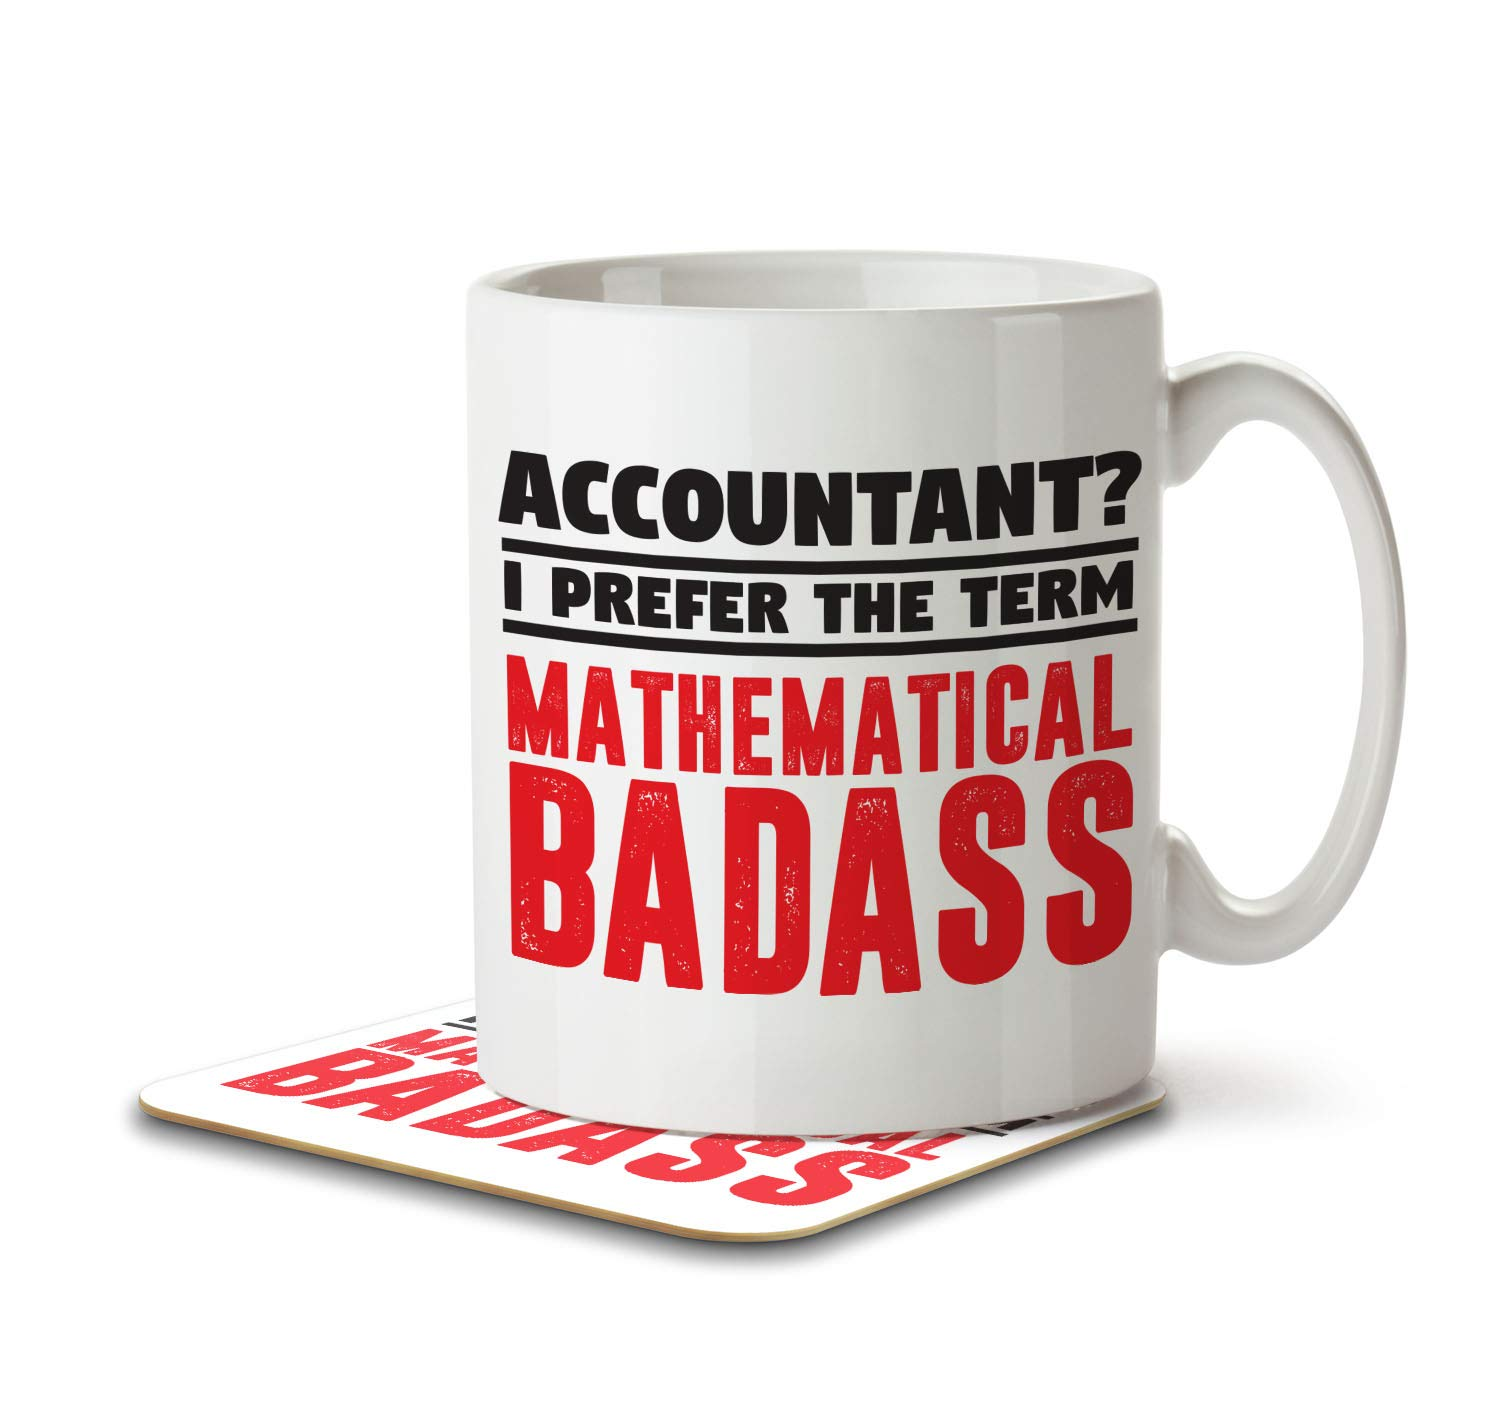 Accountant? I Prefer the Term Mathematical Badass - Mug and Coaster By Inky Penguin The Inky Penguin